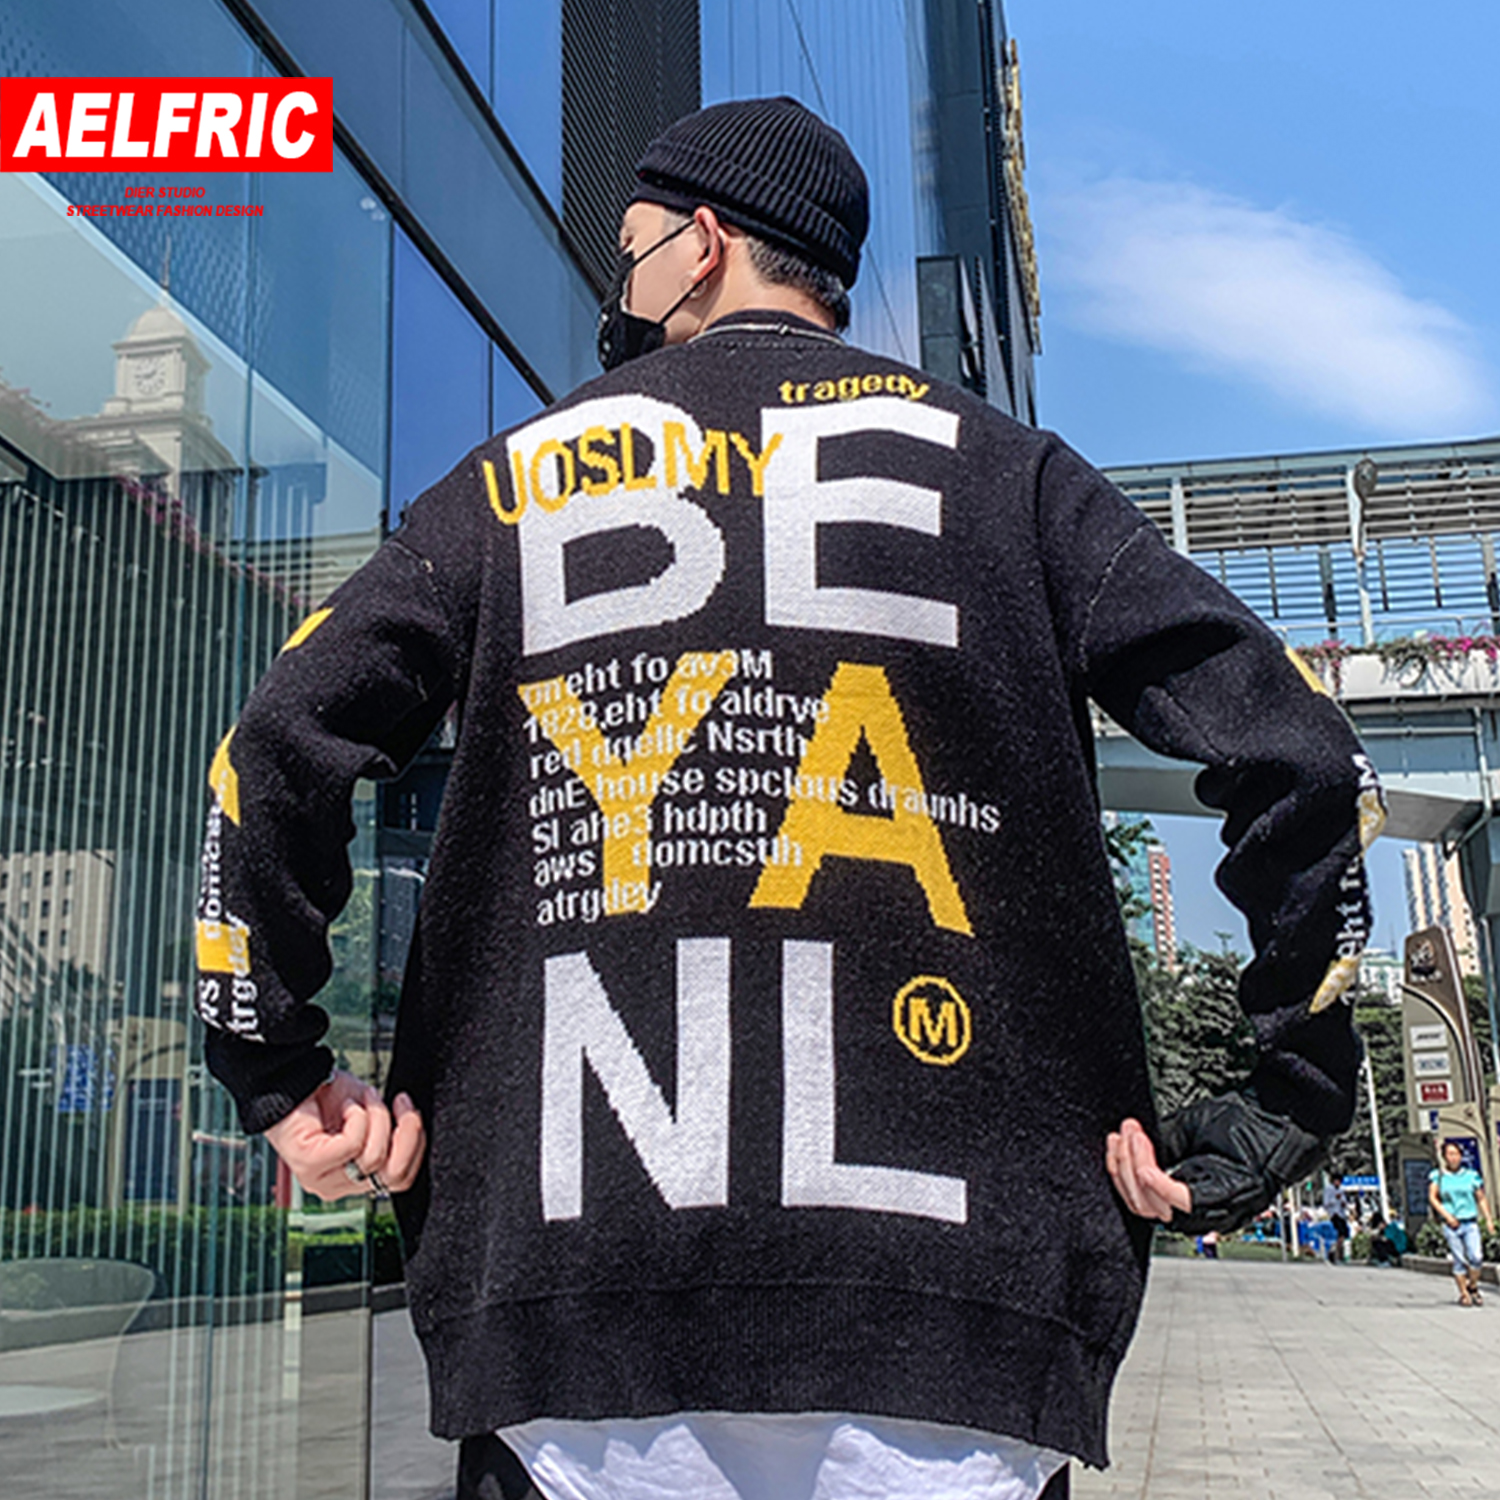 11 BYBB'S DARK Letter Knitted Mens Sweater 2019 Autumn Winter Harajuku Hip Hop Outwear Ripped Casual Cotton Pullover Streetwear